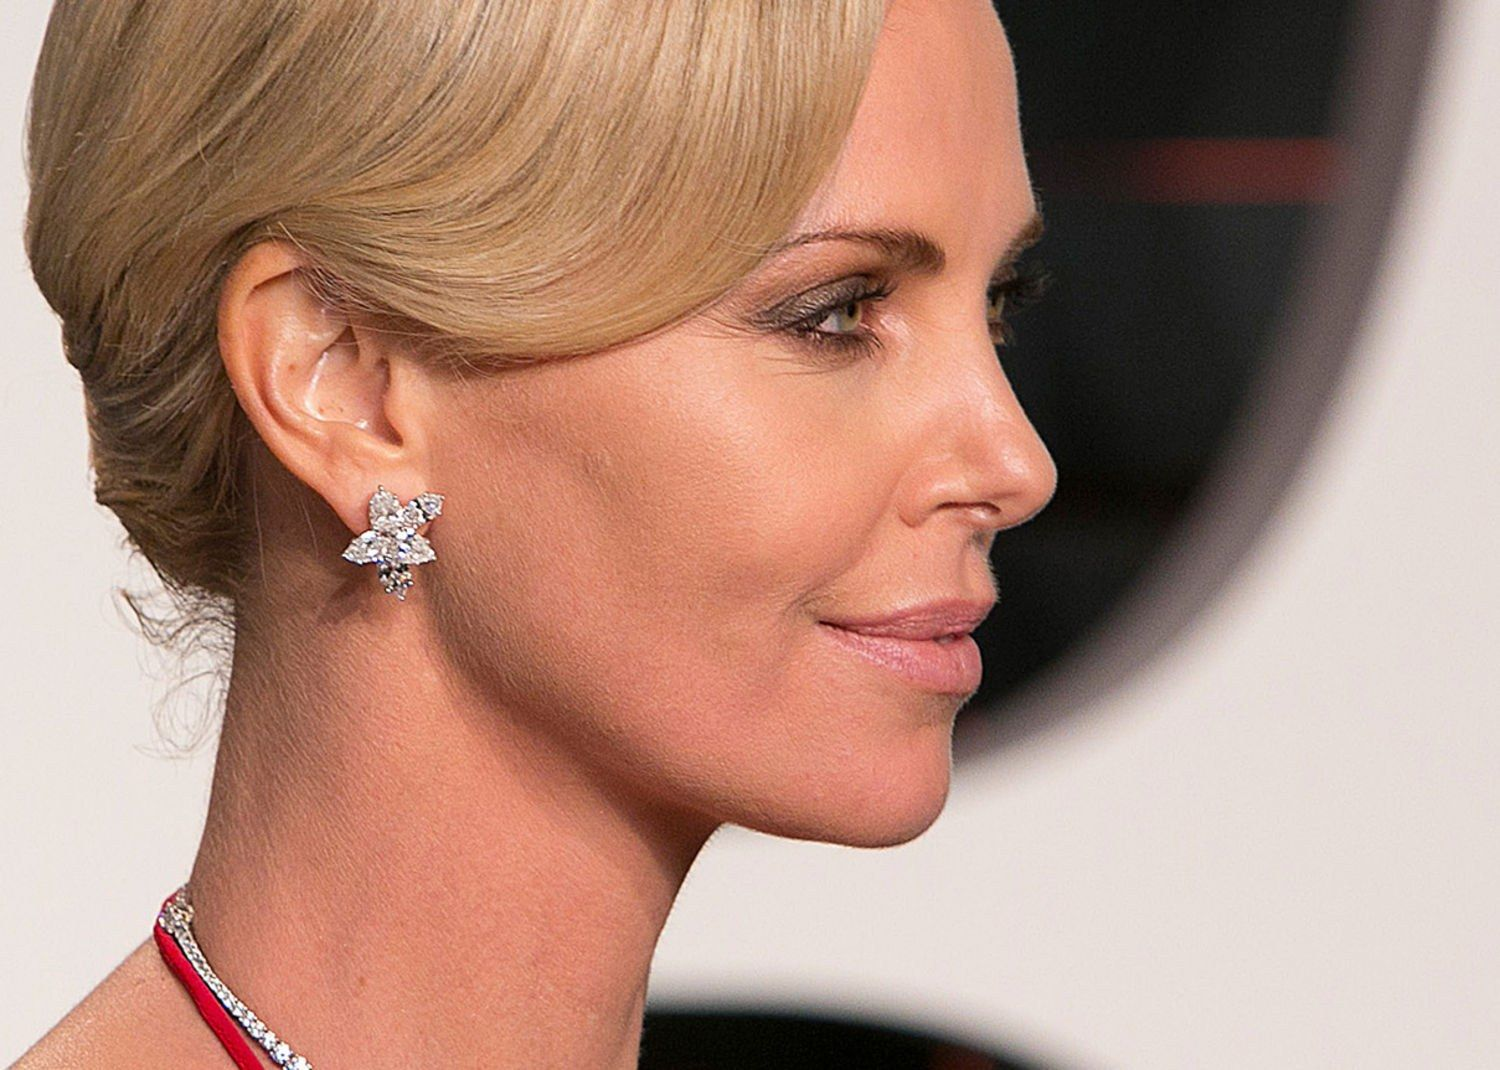 646f5c50b9d Charlize Theron | Celebrity Jewelry | Jewelry, Diamond jewelry ...